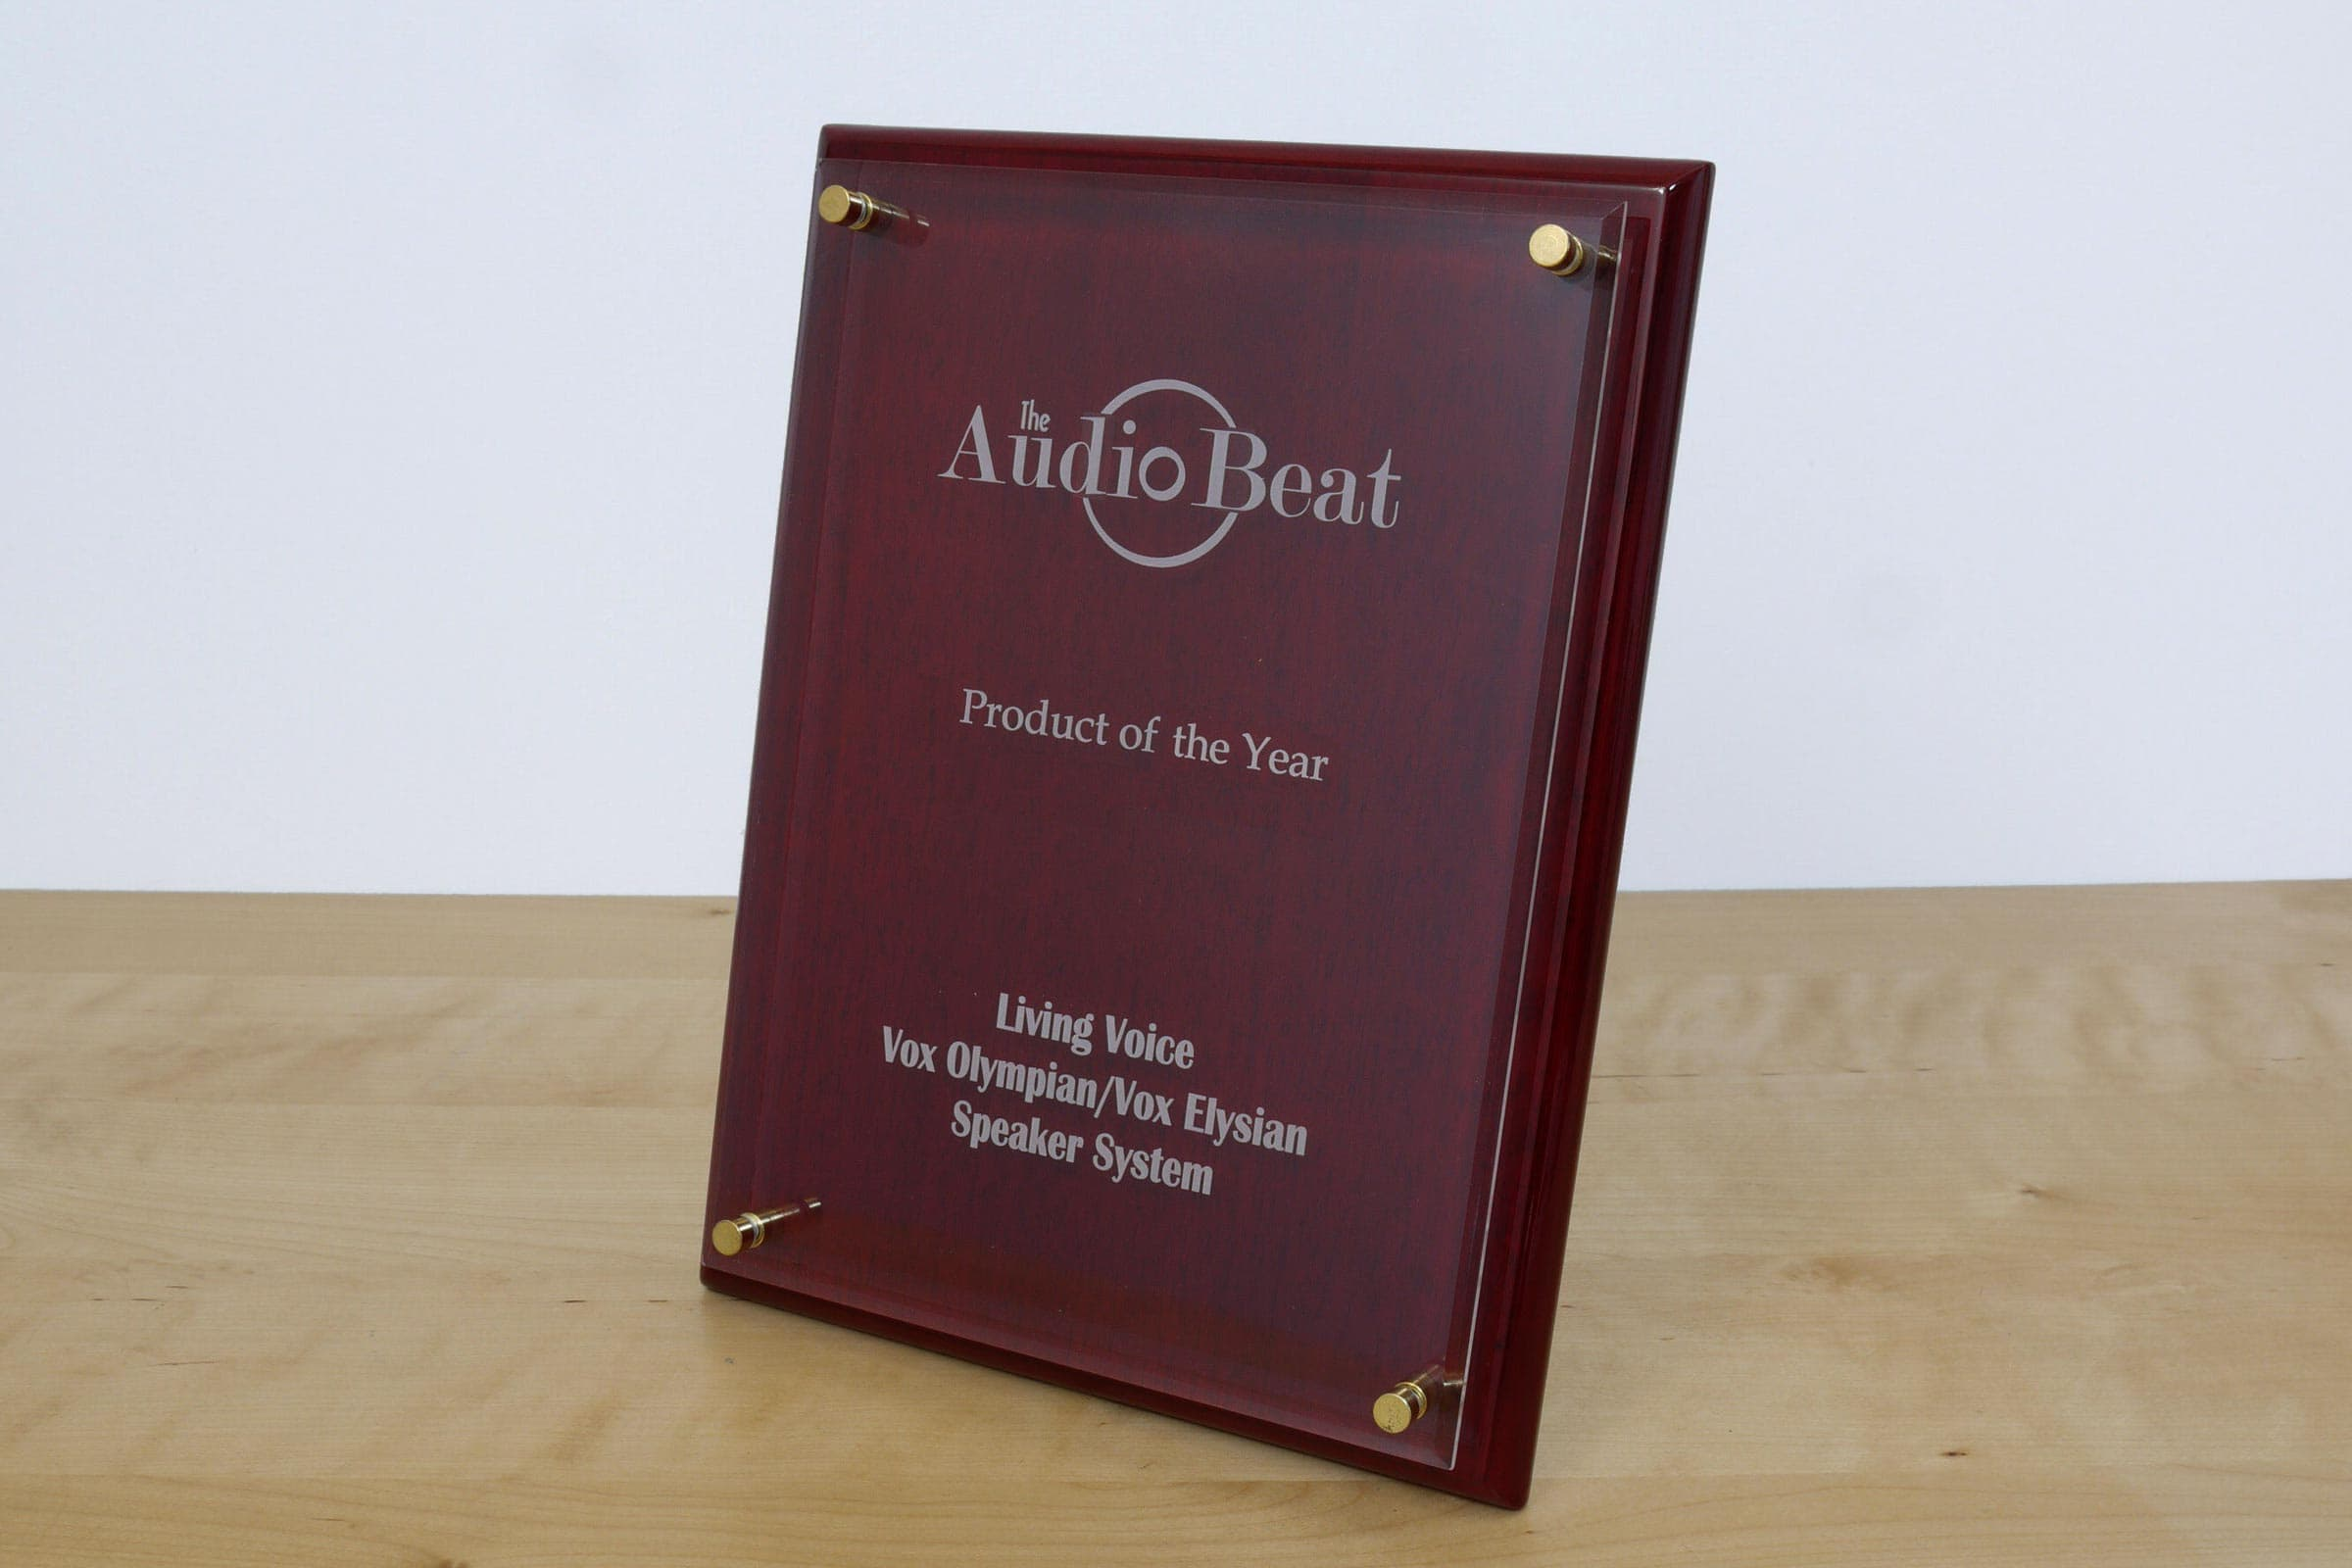 AudioBeat product of the year award for Vox Olympian & Vox Elysian system